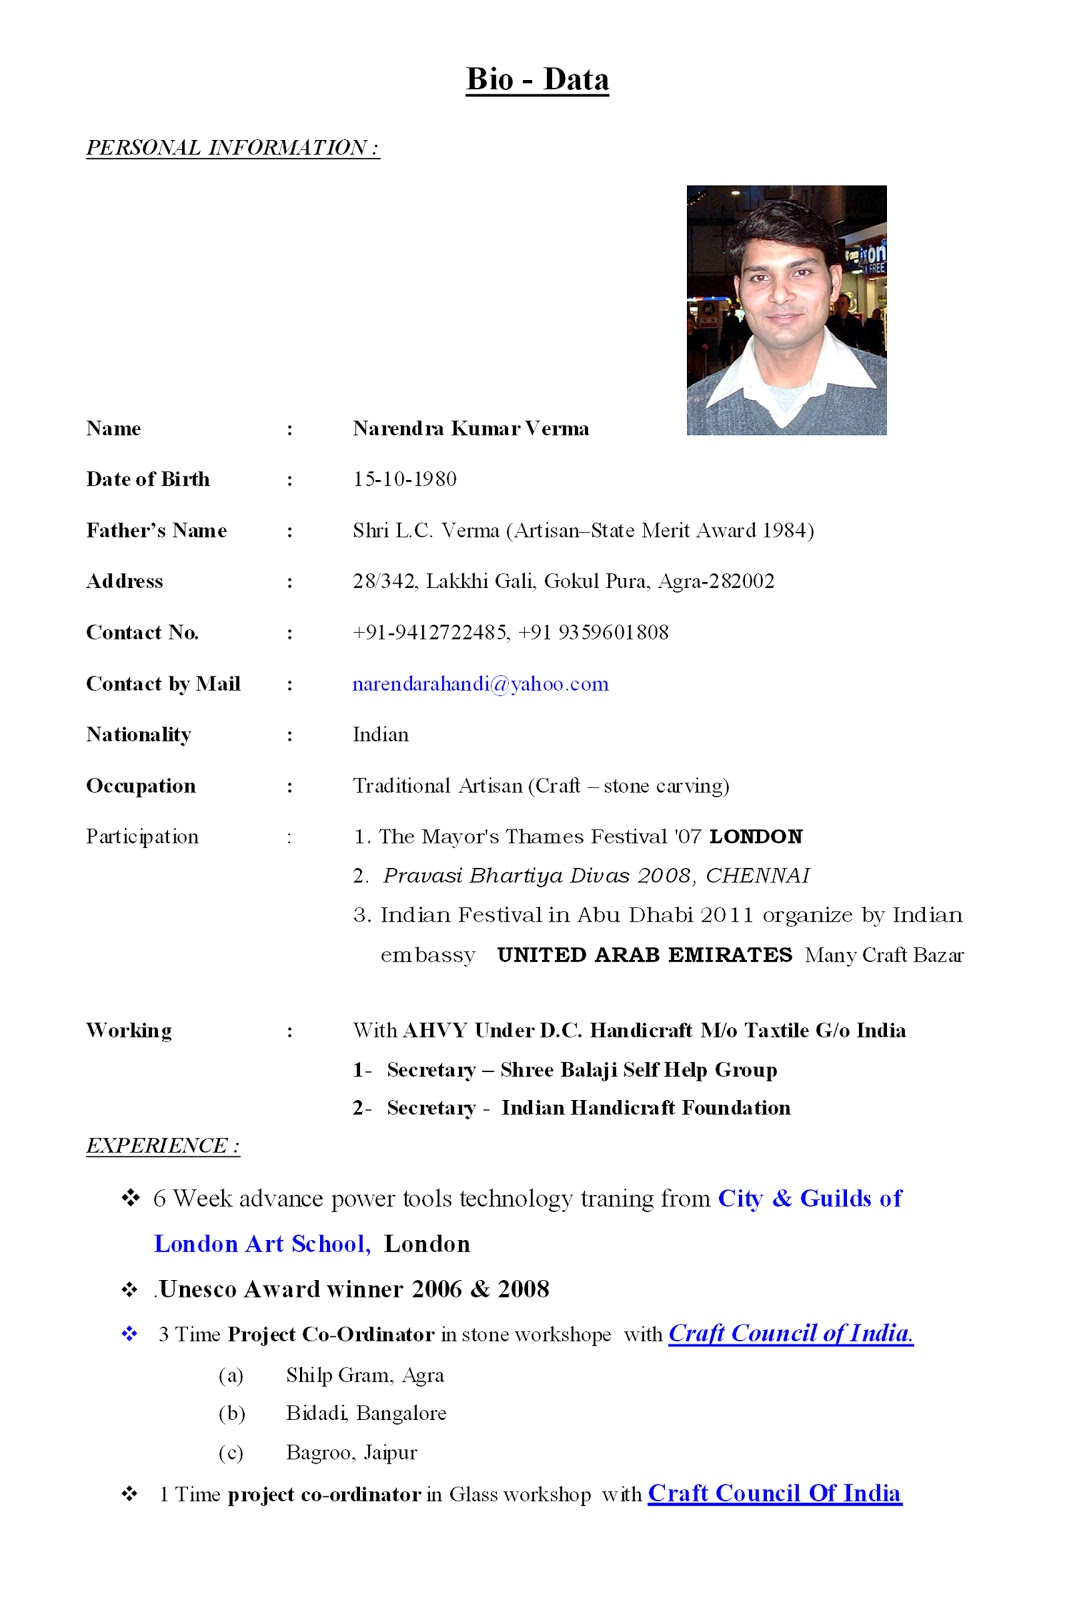 sample resume bio data sample resume bio data makemoney alex tk - Resume Sample Biography Template